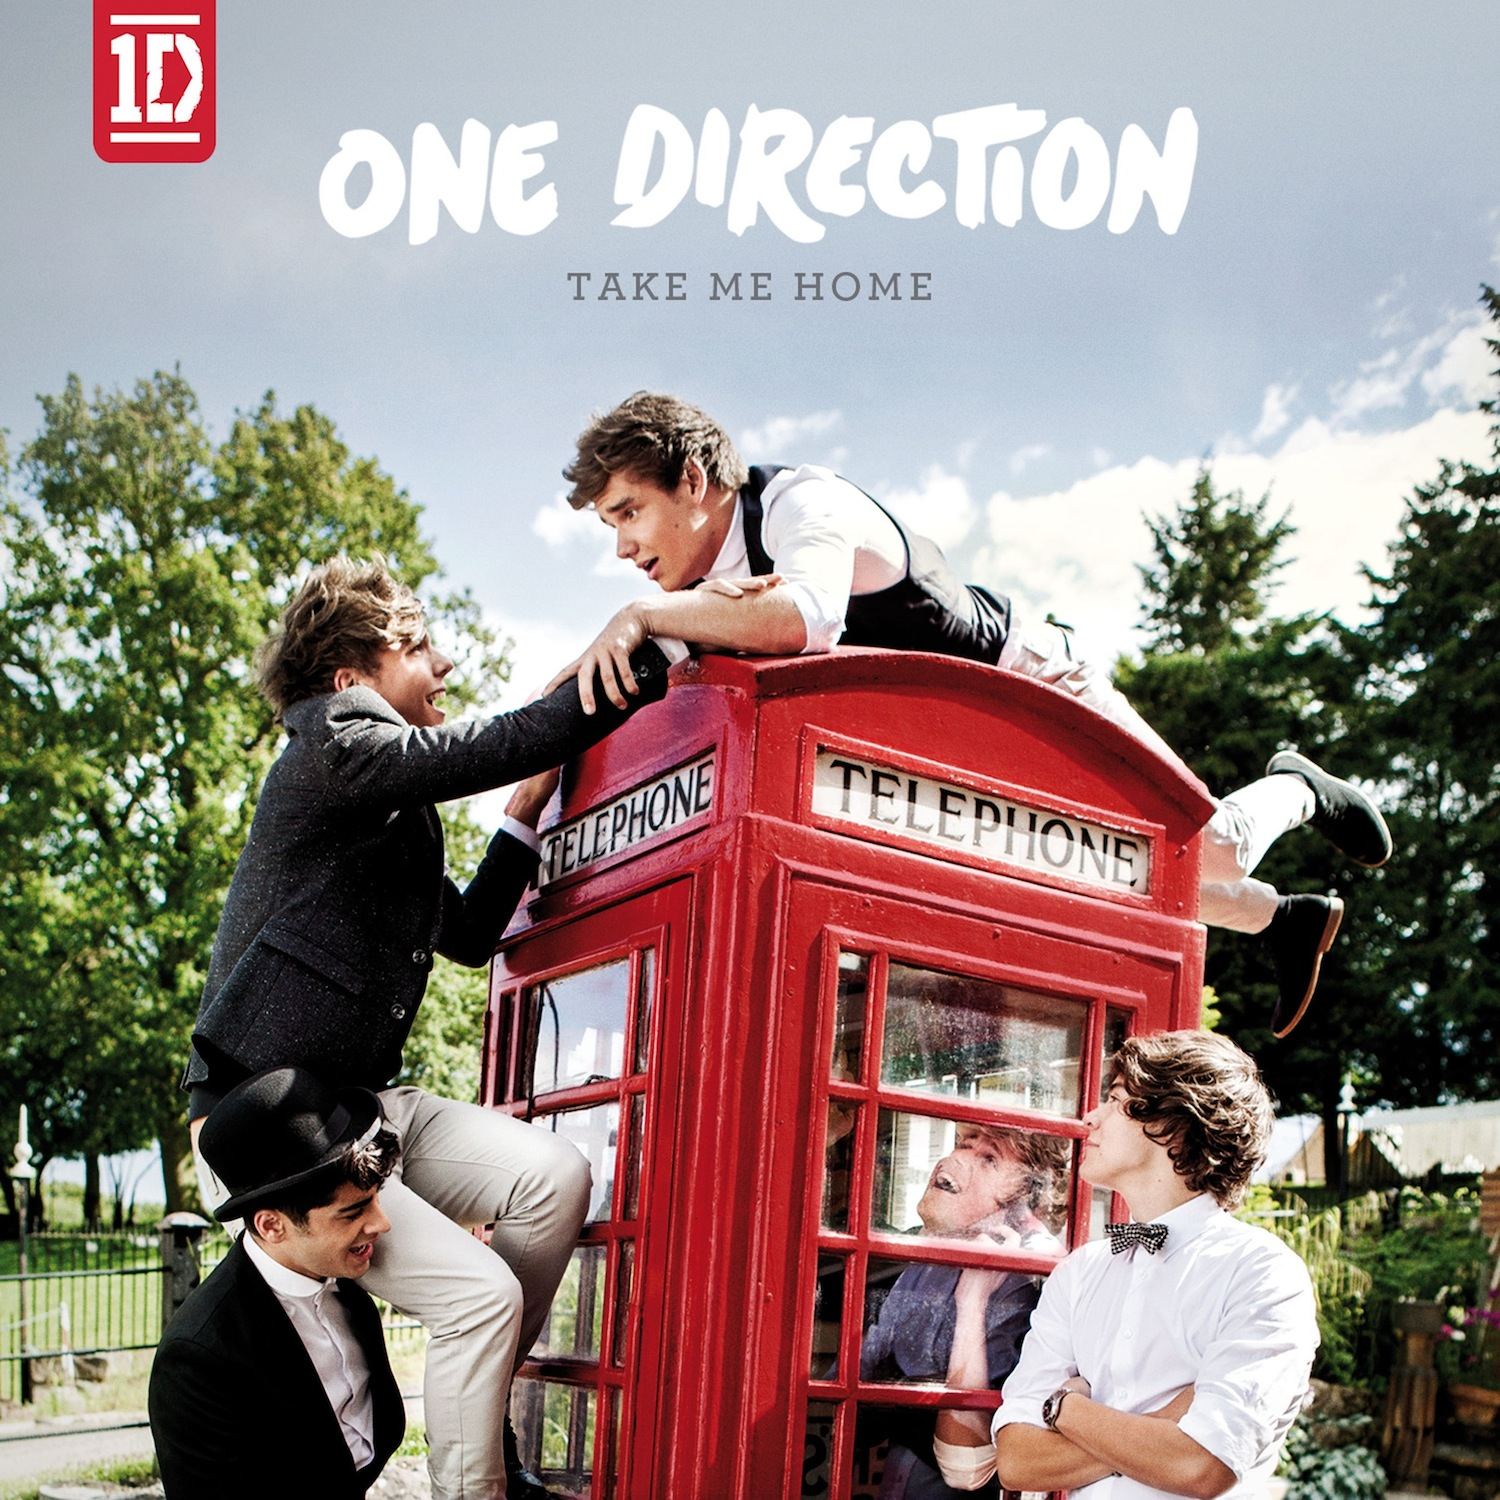 http://www.red17.com/pics/2012/12/onedirectiontakemehomecover.jpeg